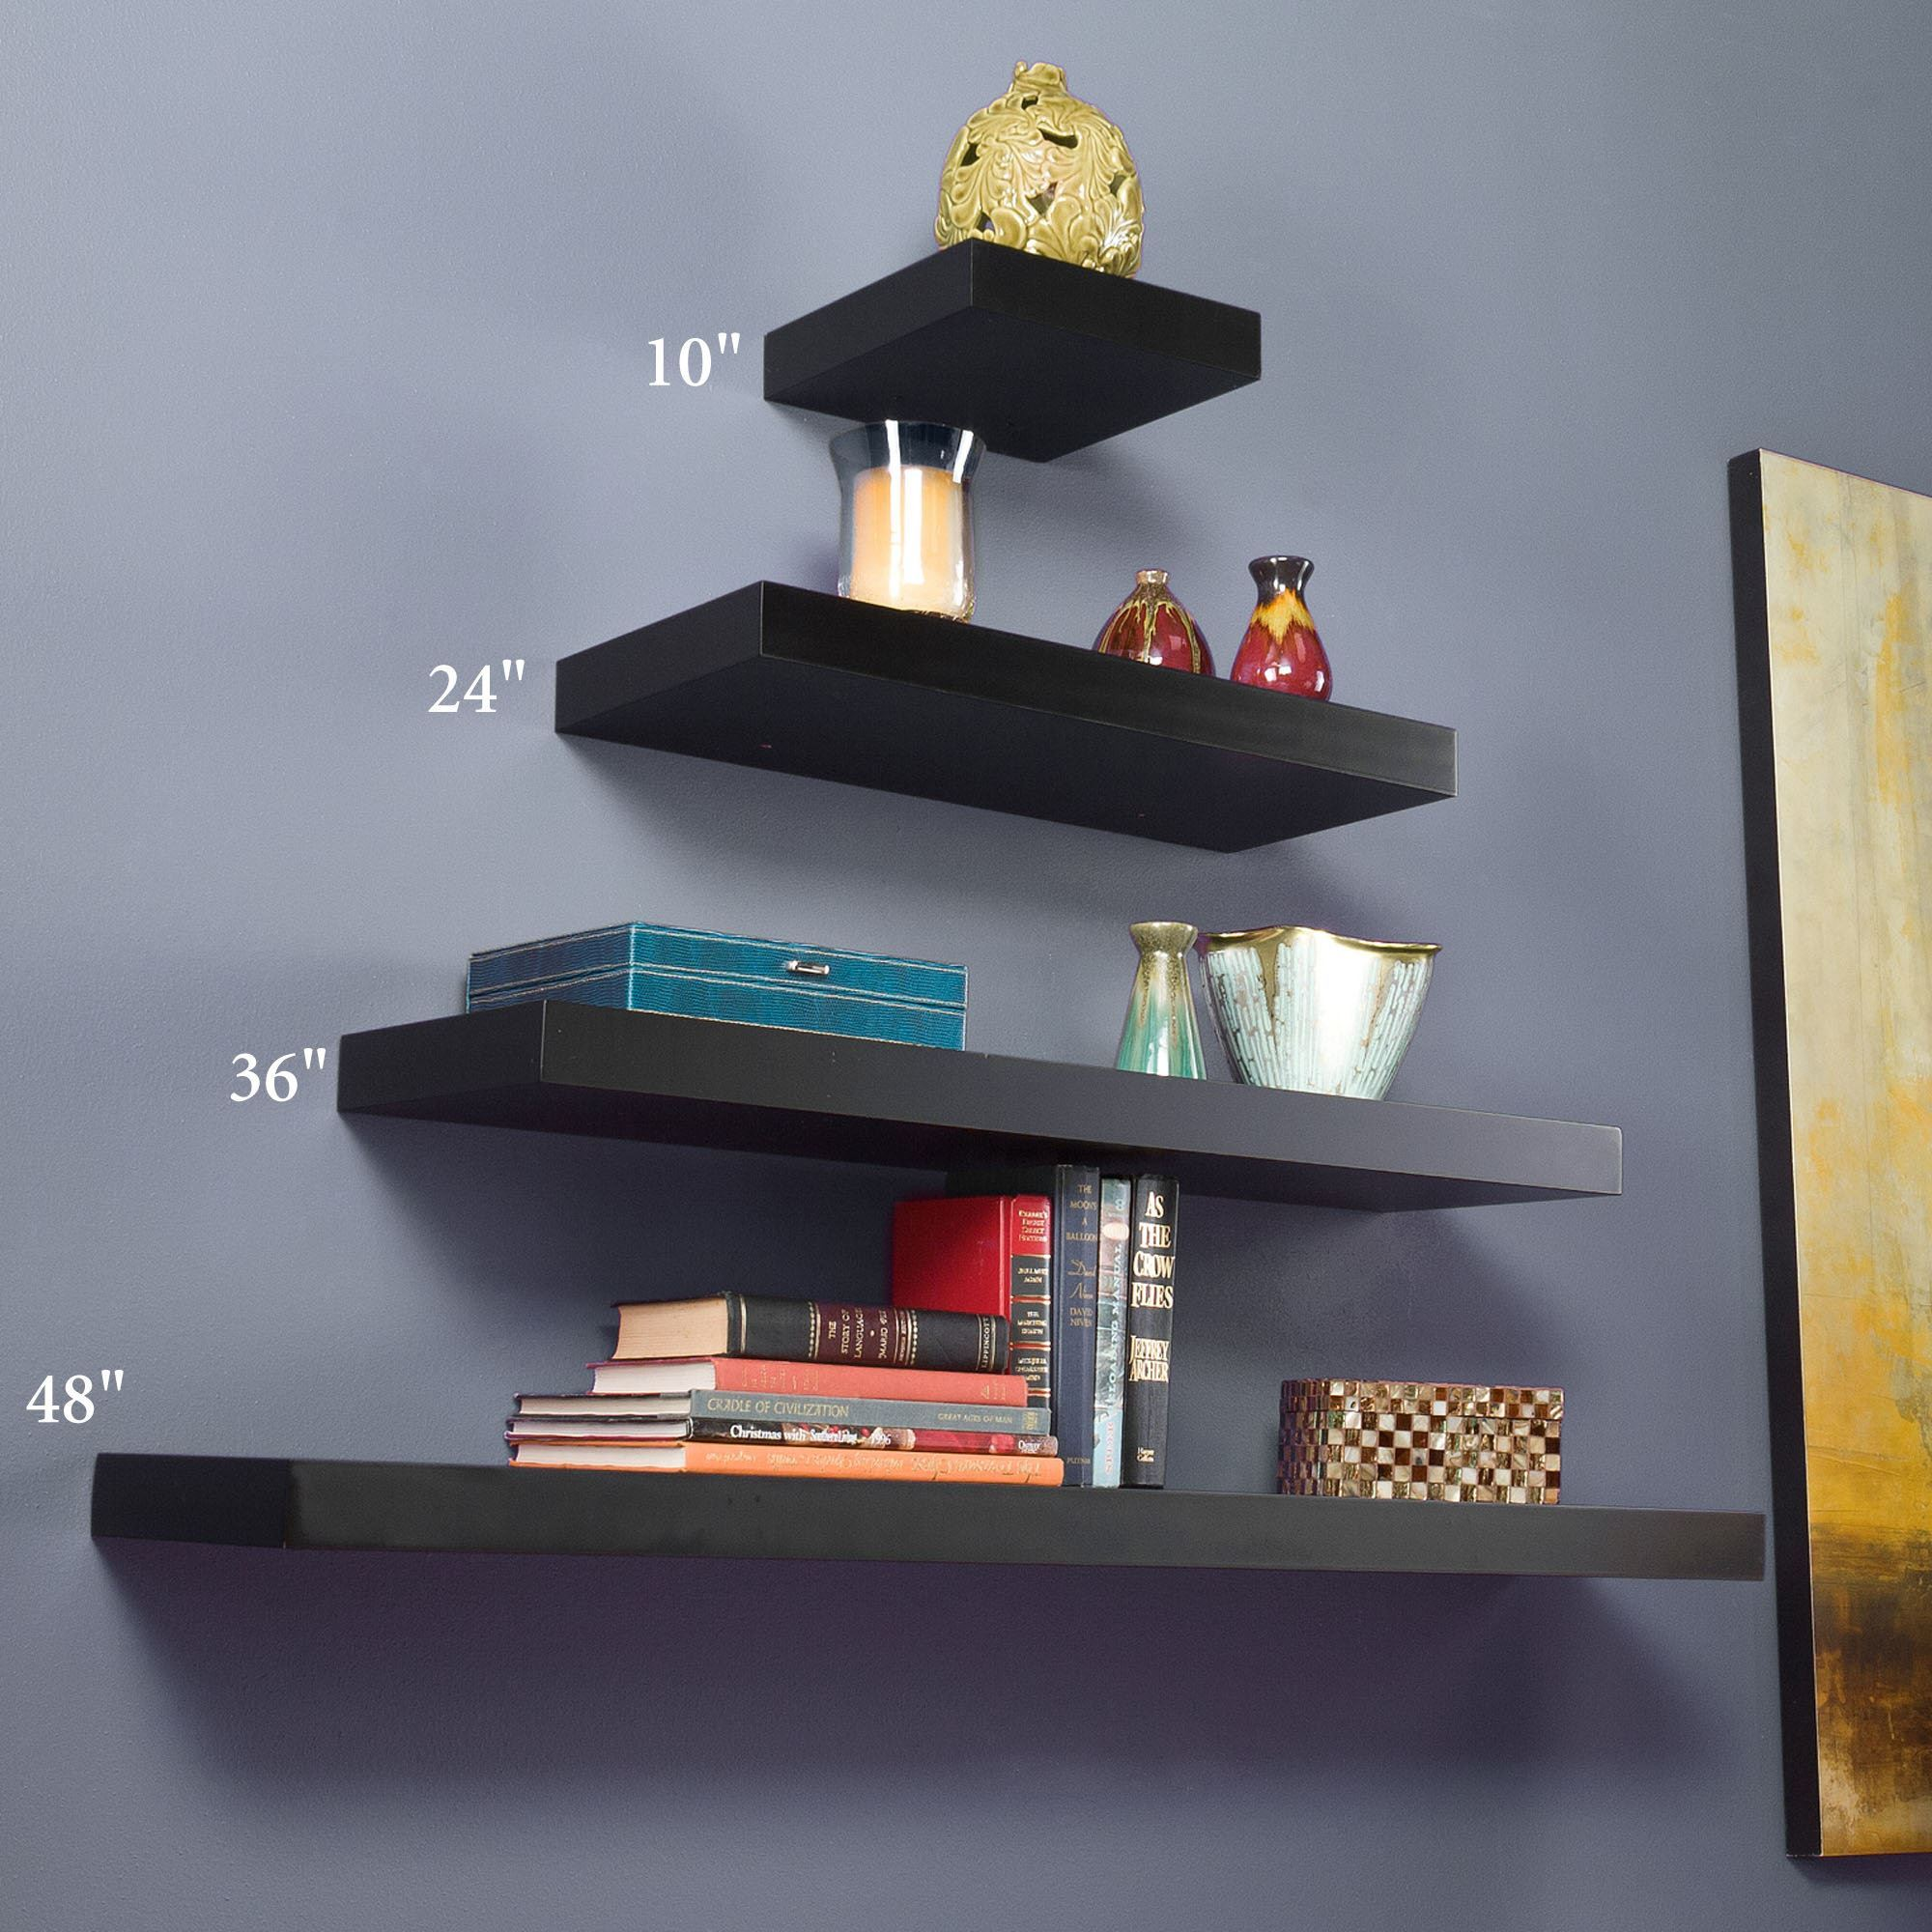 paperboard shelf way dt textured in d w teak p shelfs wall floating zboard shelves decorative antigua basics dark x grain brackets